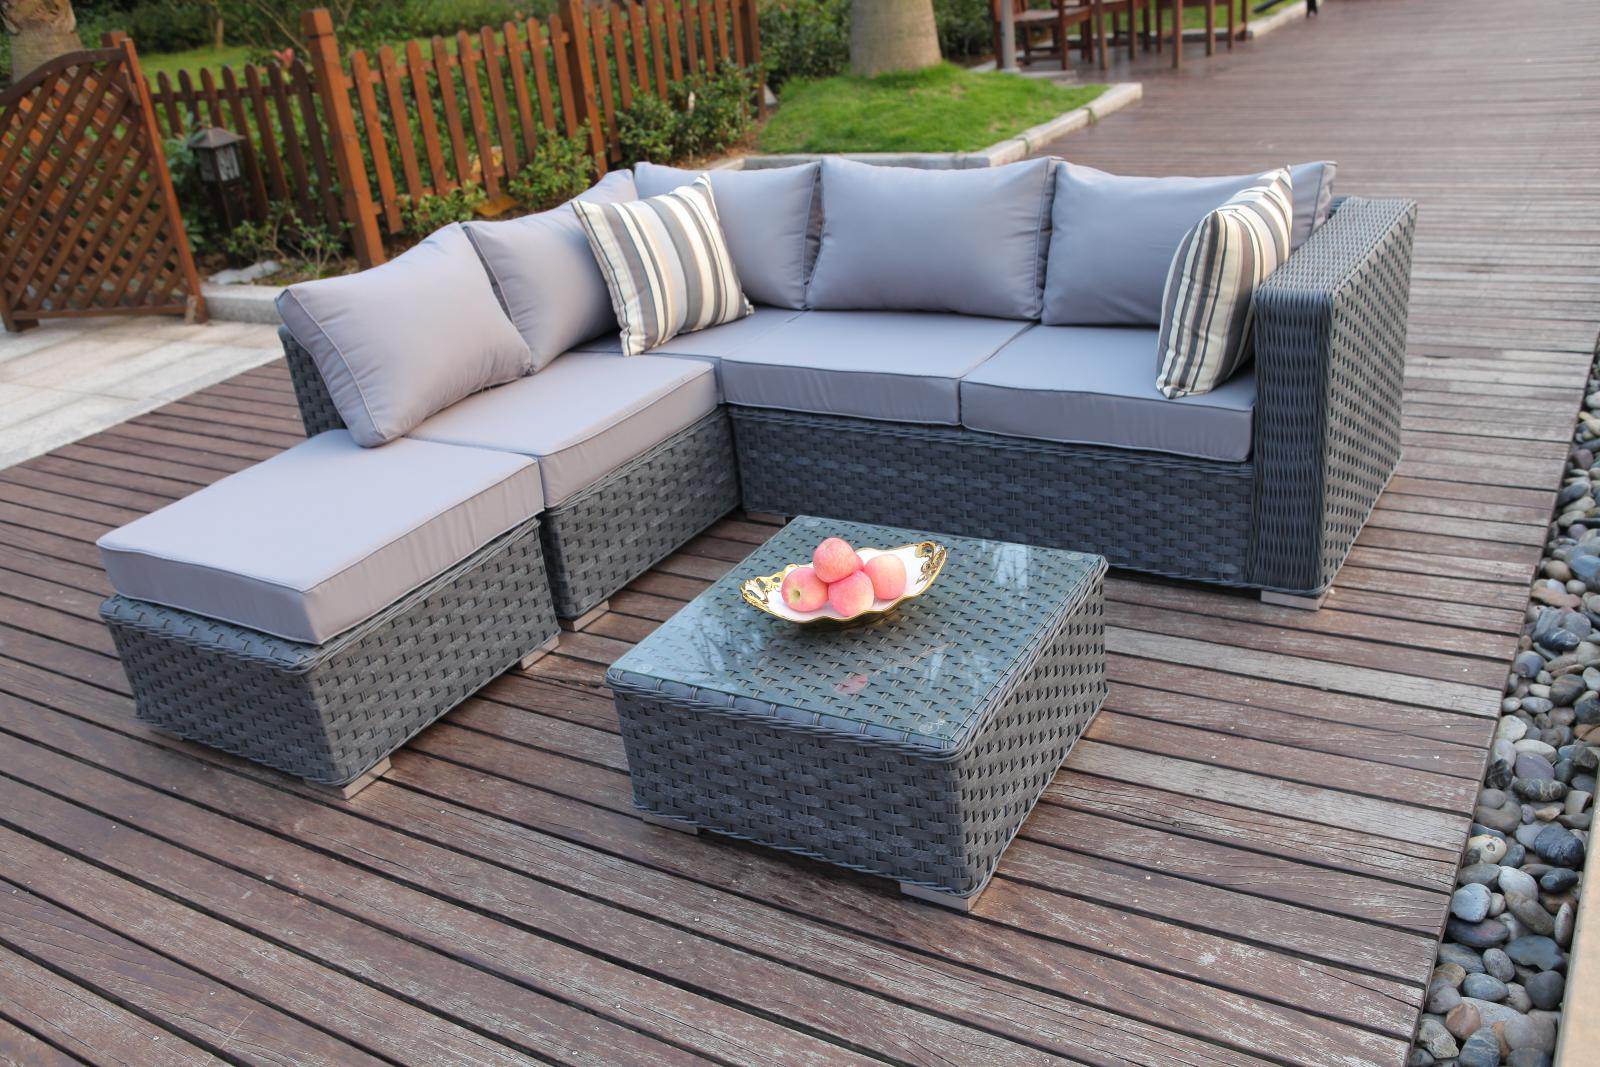 corner sofas for conservatories crate and barrel sectional sofa sale conservatory modular 5 seater rattan set